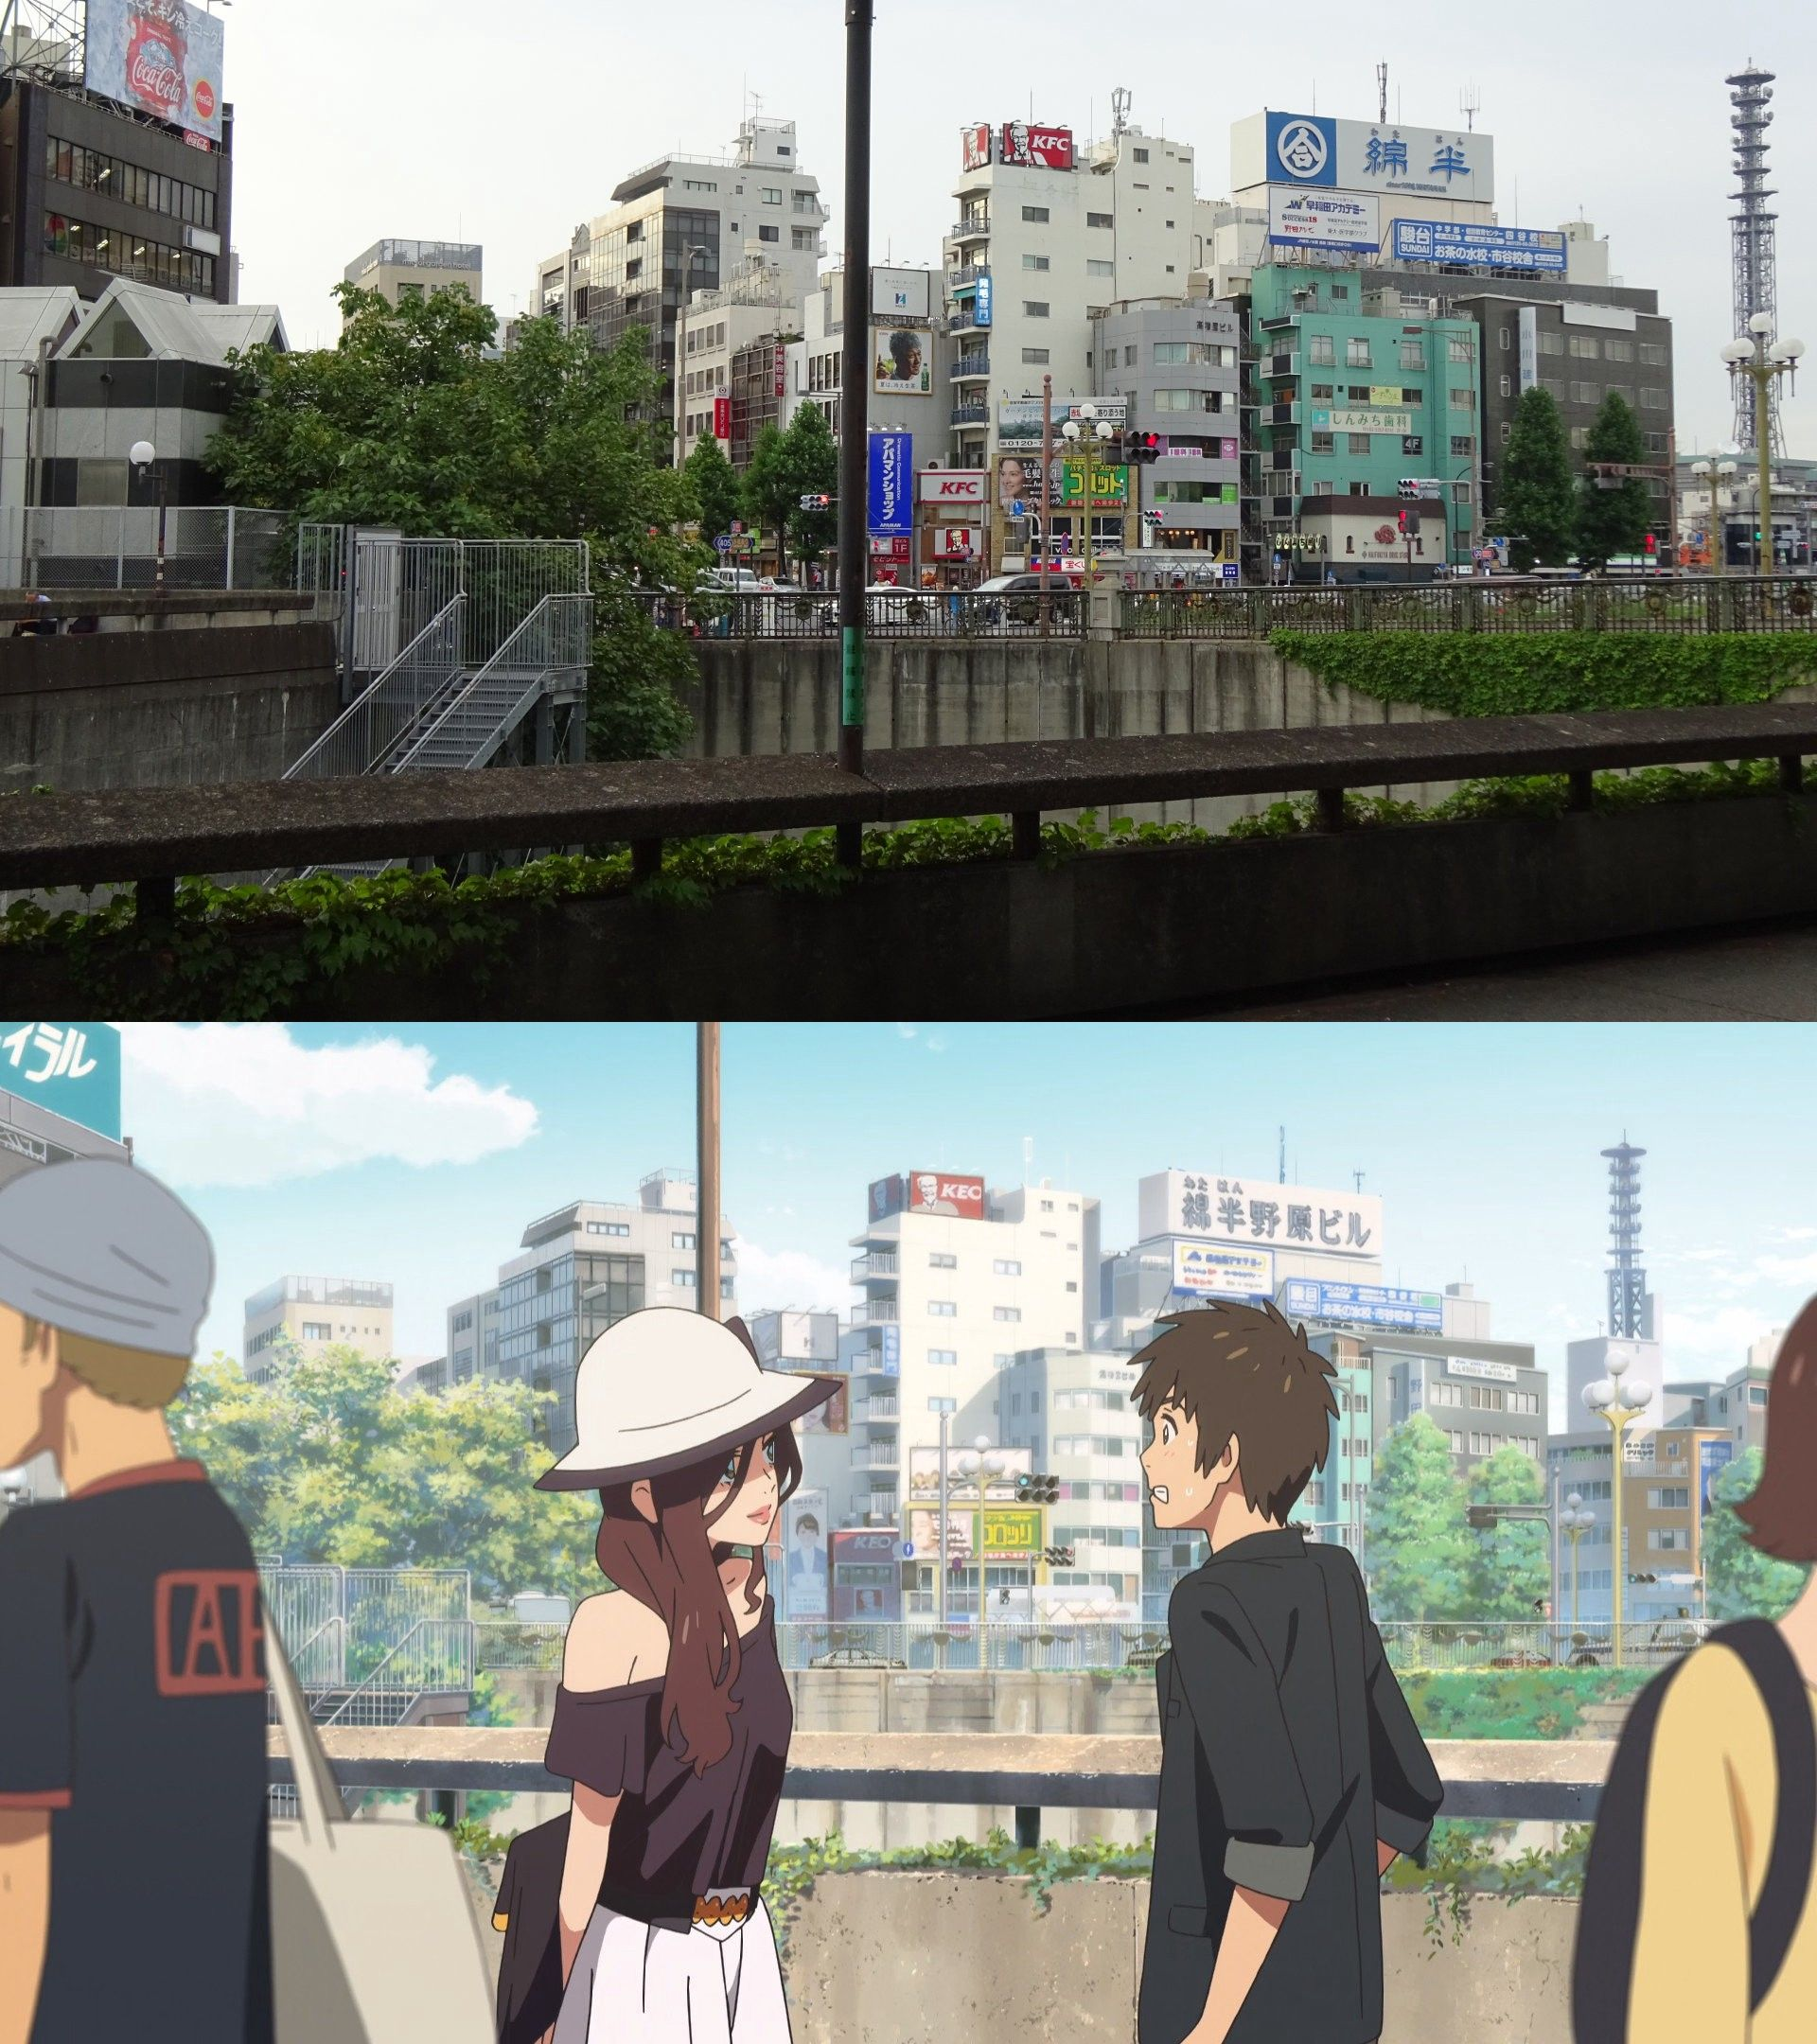 I visited real life locations from Kimi no Na wa. — seichi junrei (Tokyo side)